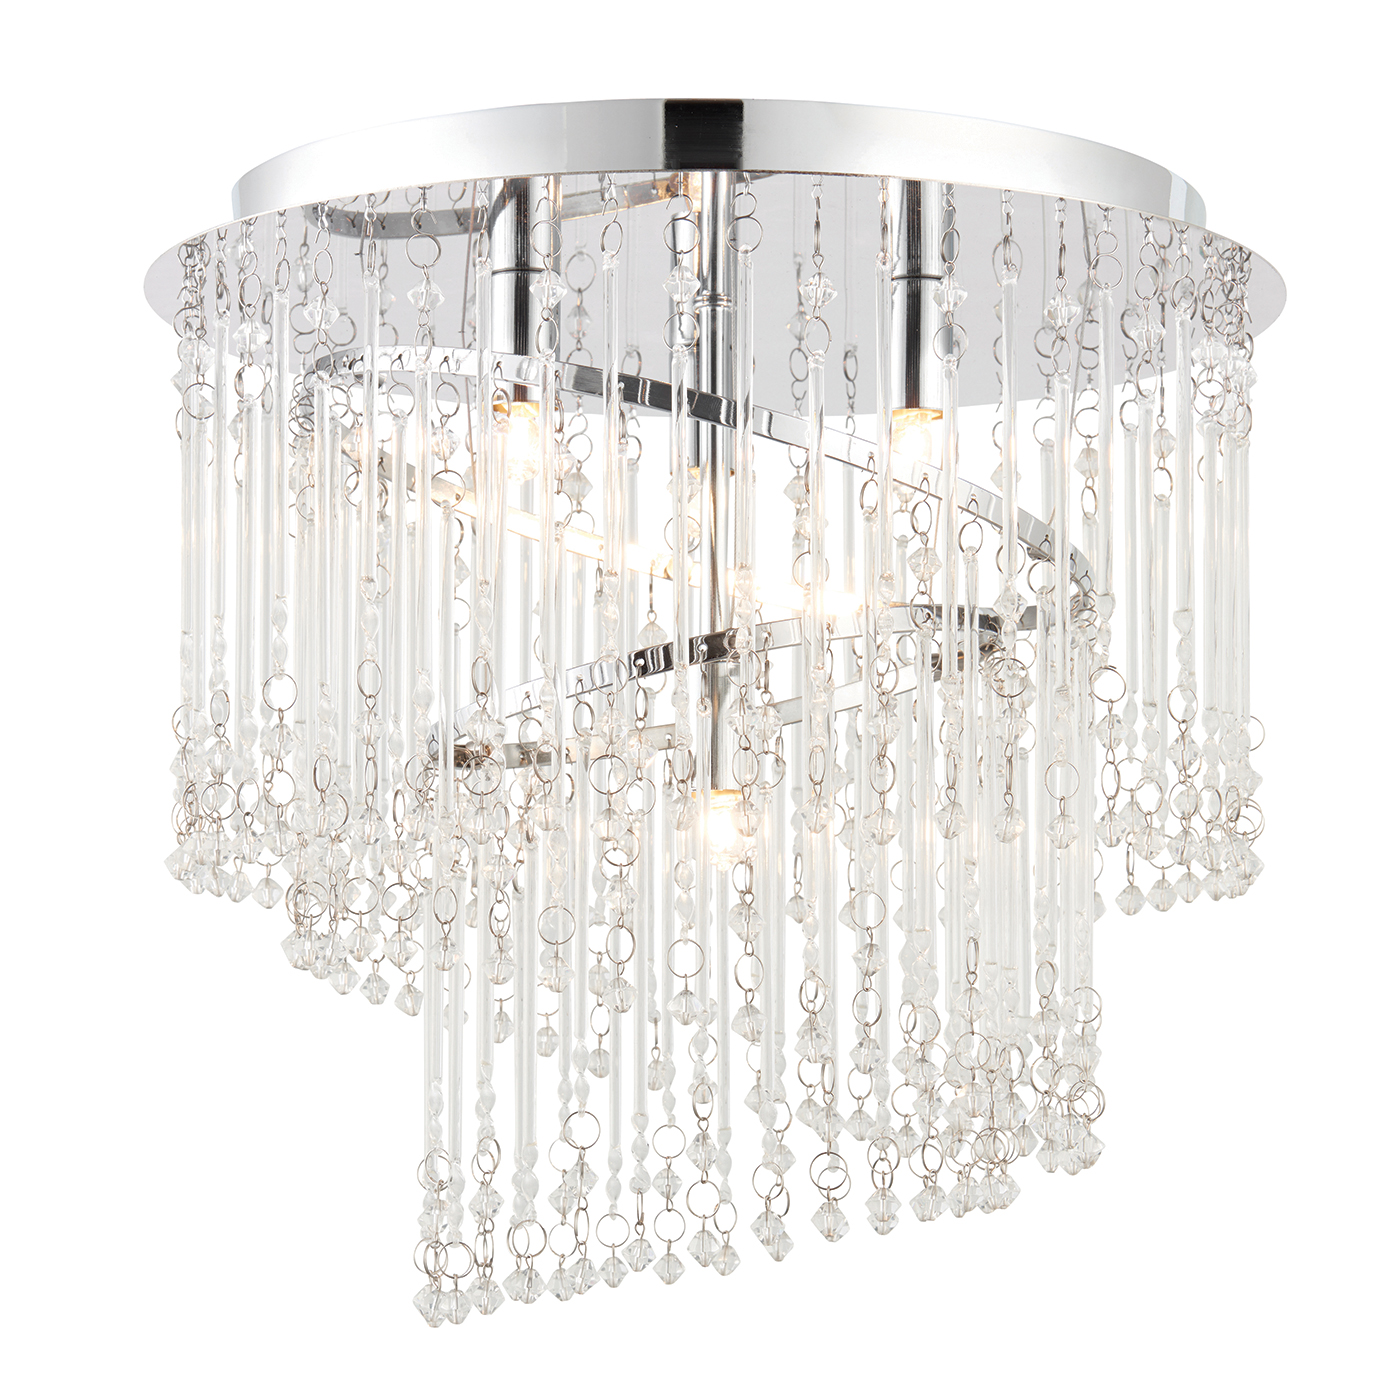 Endon Camille flush ceiling light 4x 28W Clear glass & chrome effect plate Thumbnail 1